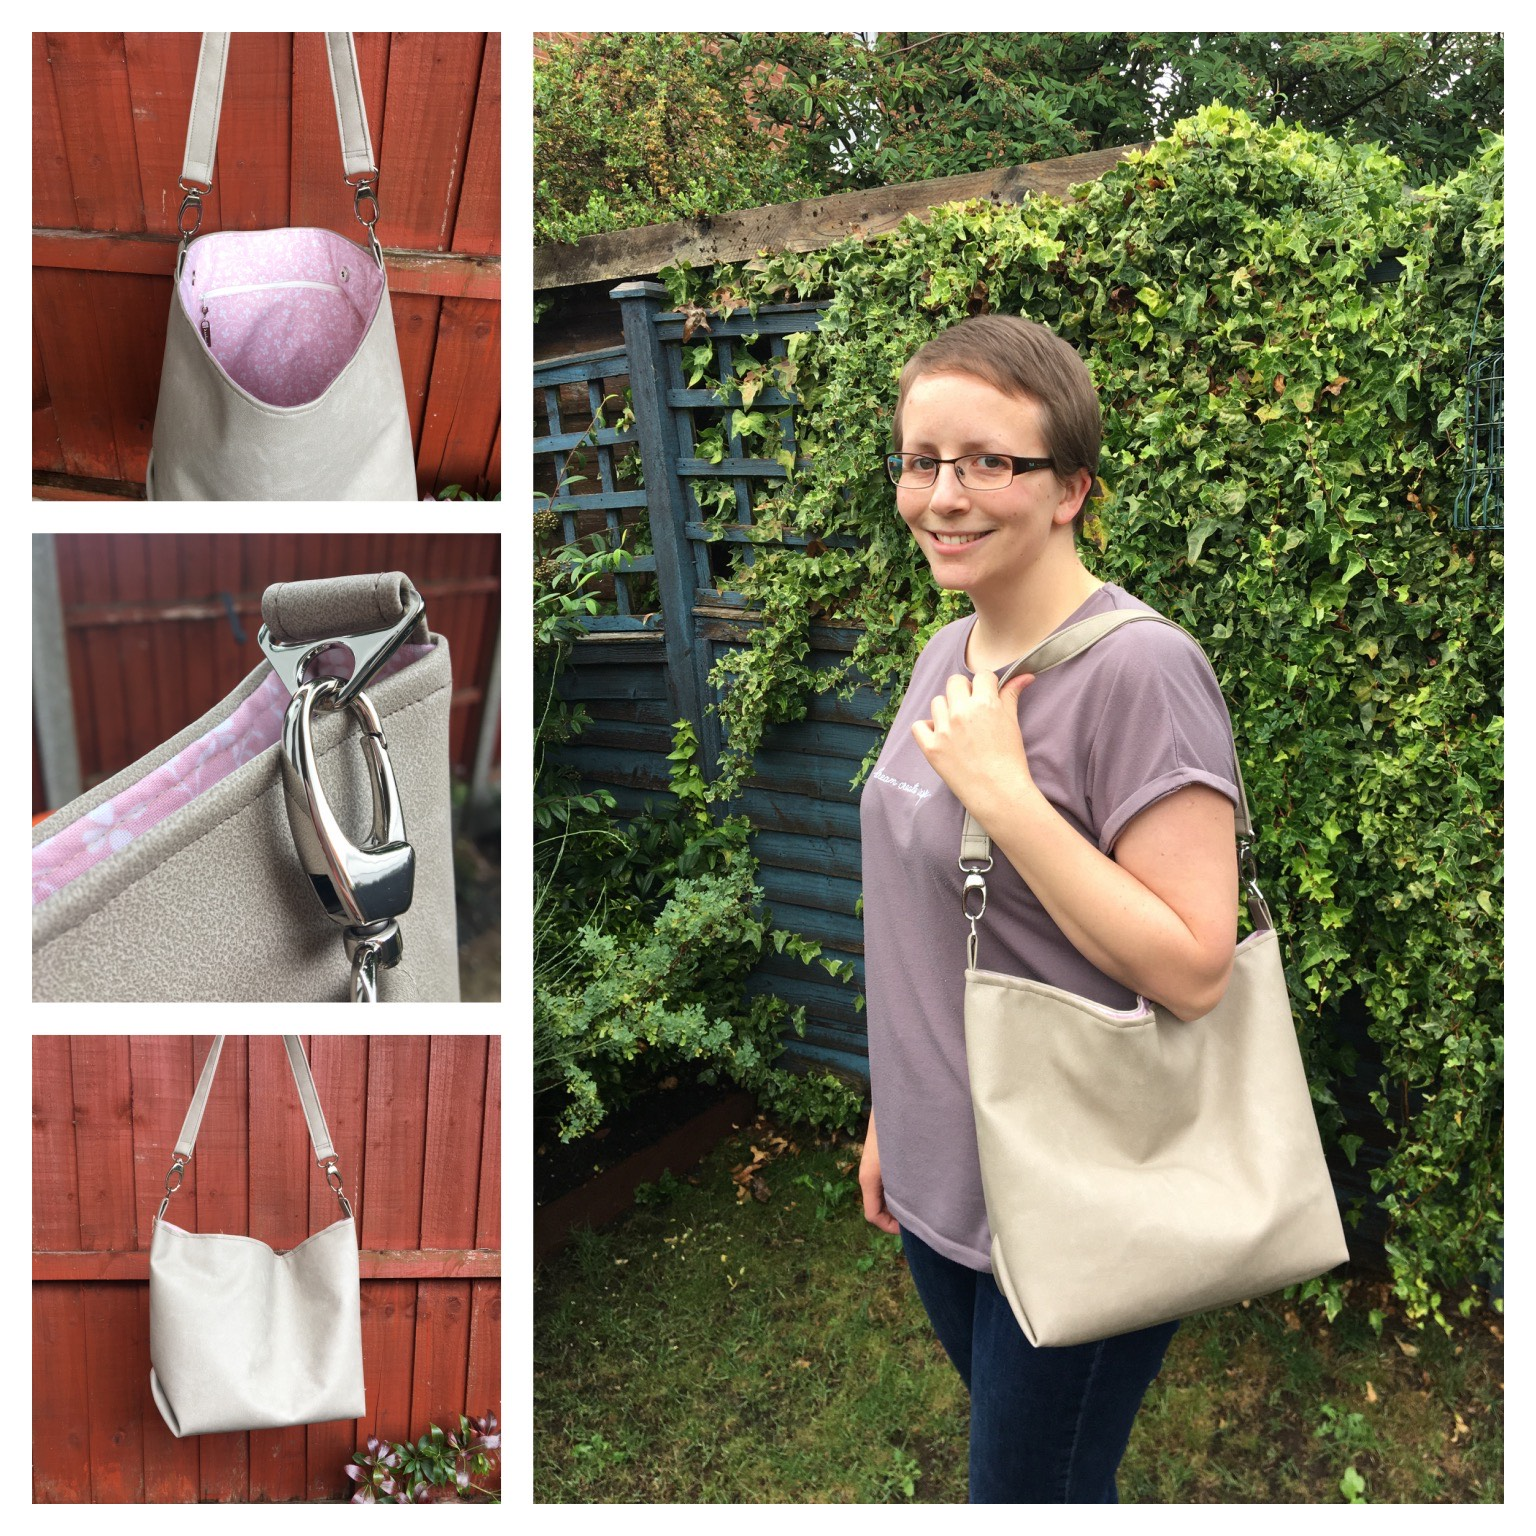 The Cwtsh Bag from Sewing Patterns by Mrs H, made by Evey Hay